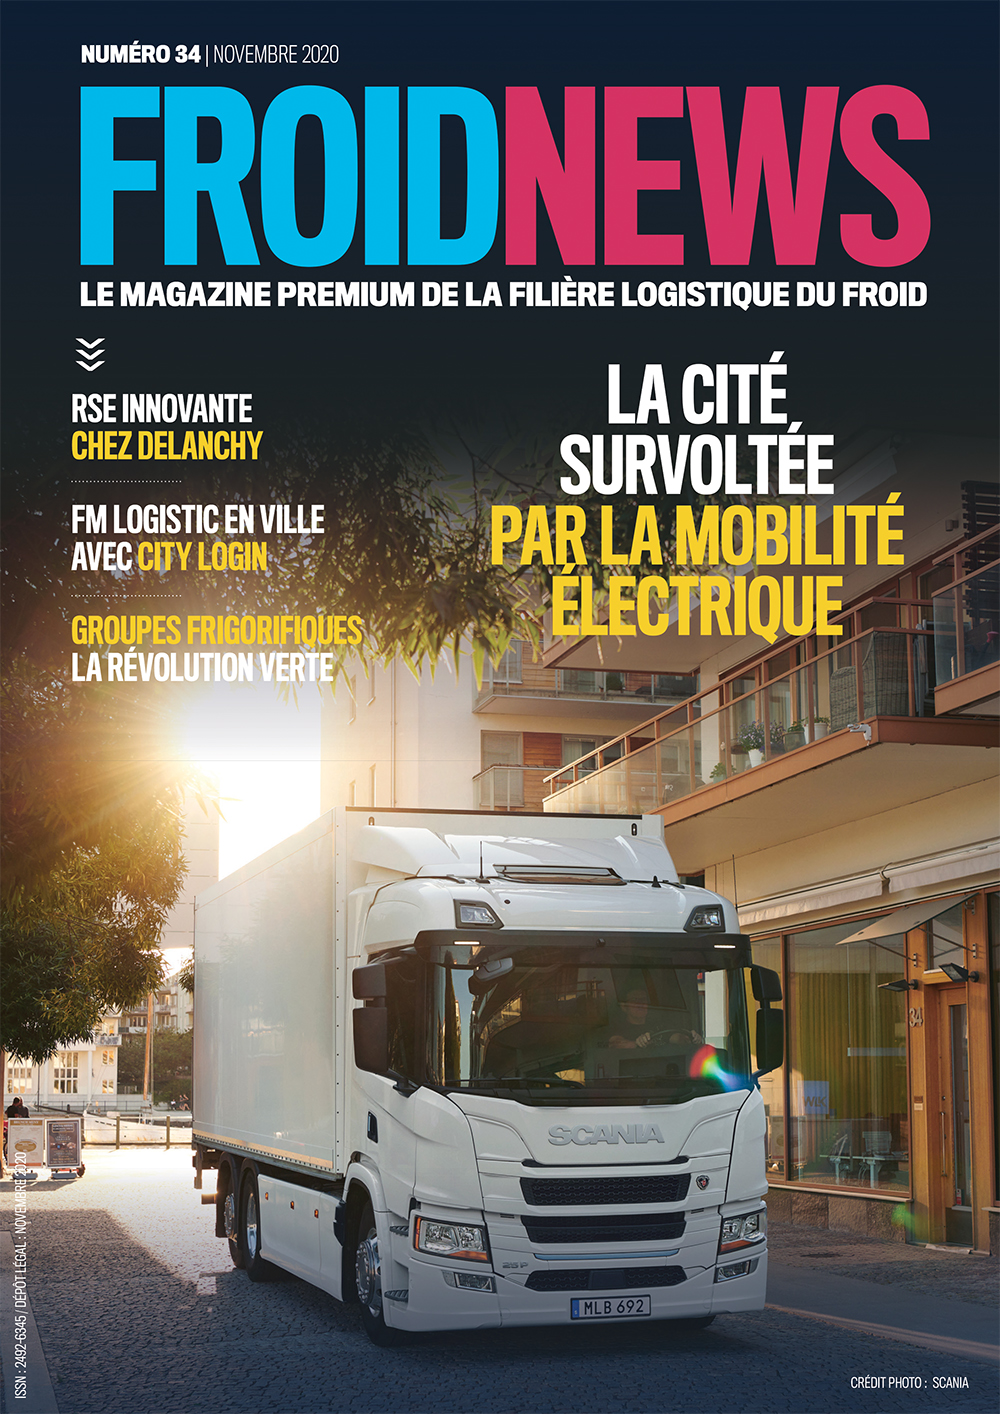 FROIDNEWS 34 sans marbre.indd